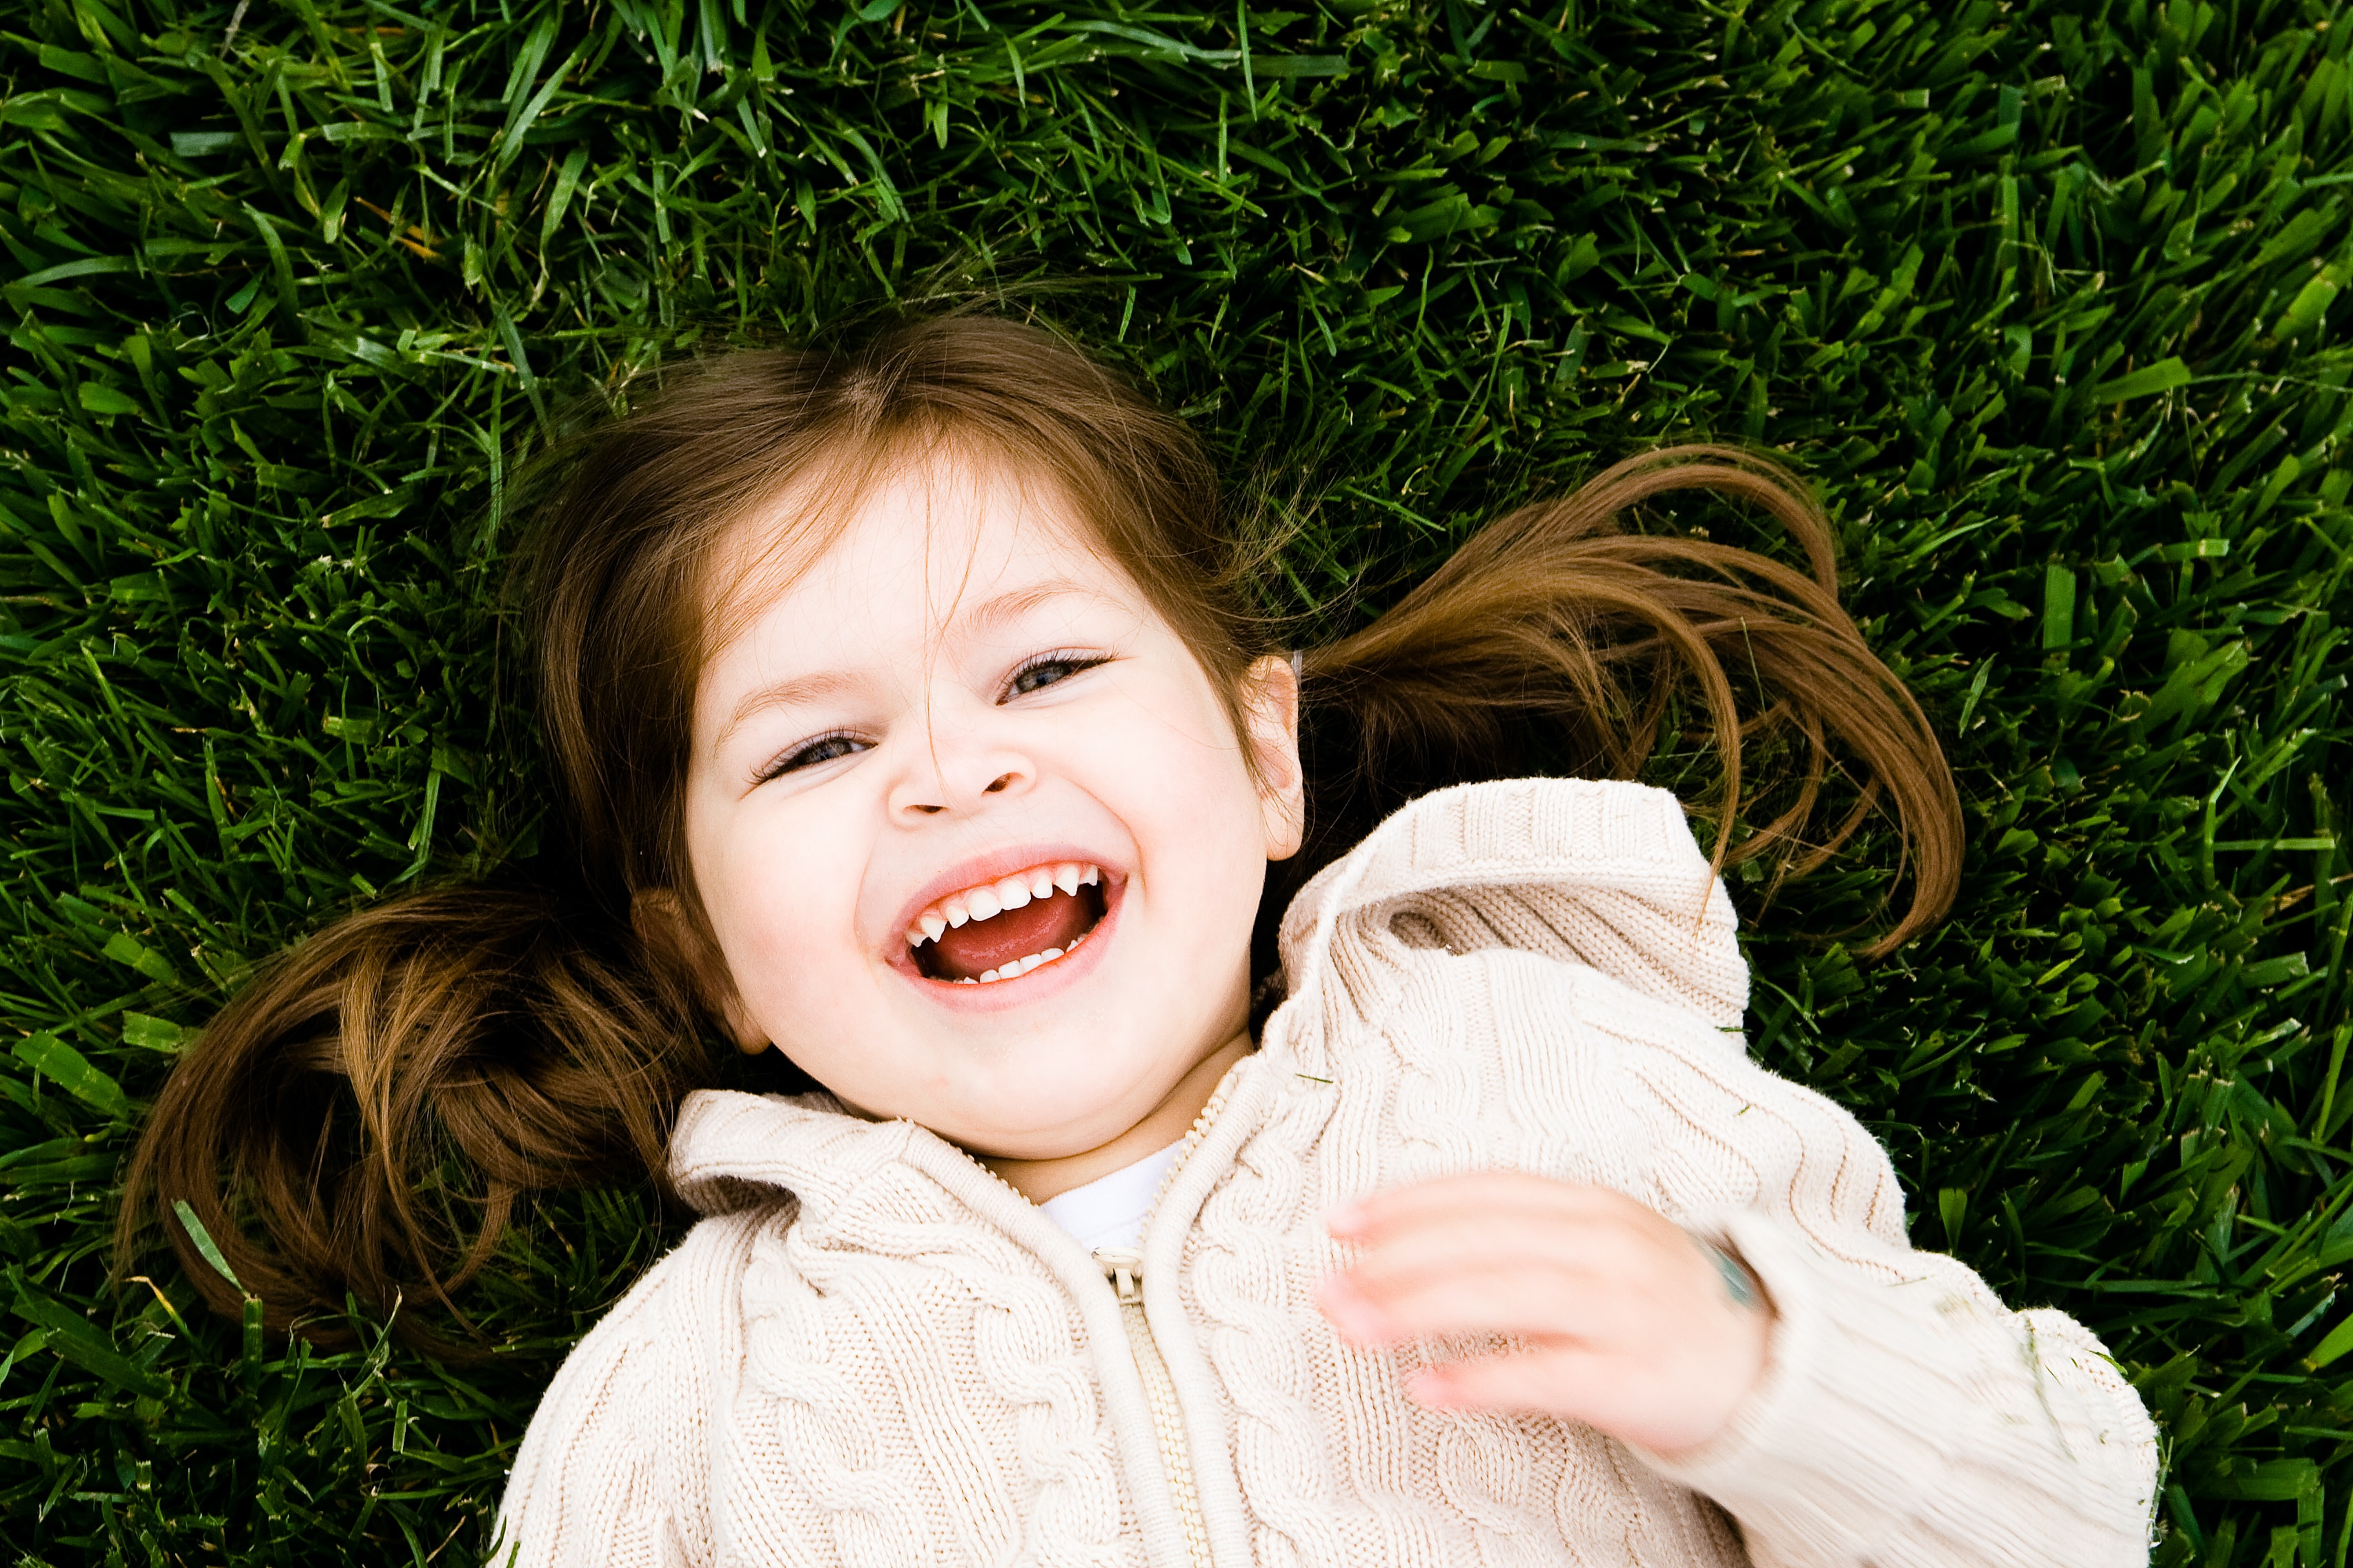 A toddler lays on green grass as she laughs happily